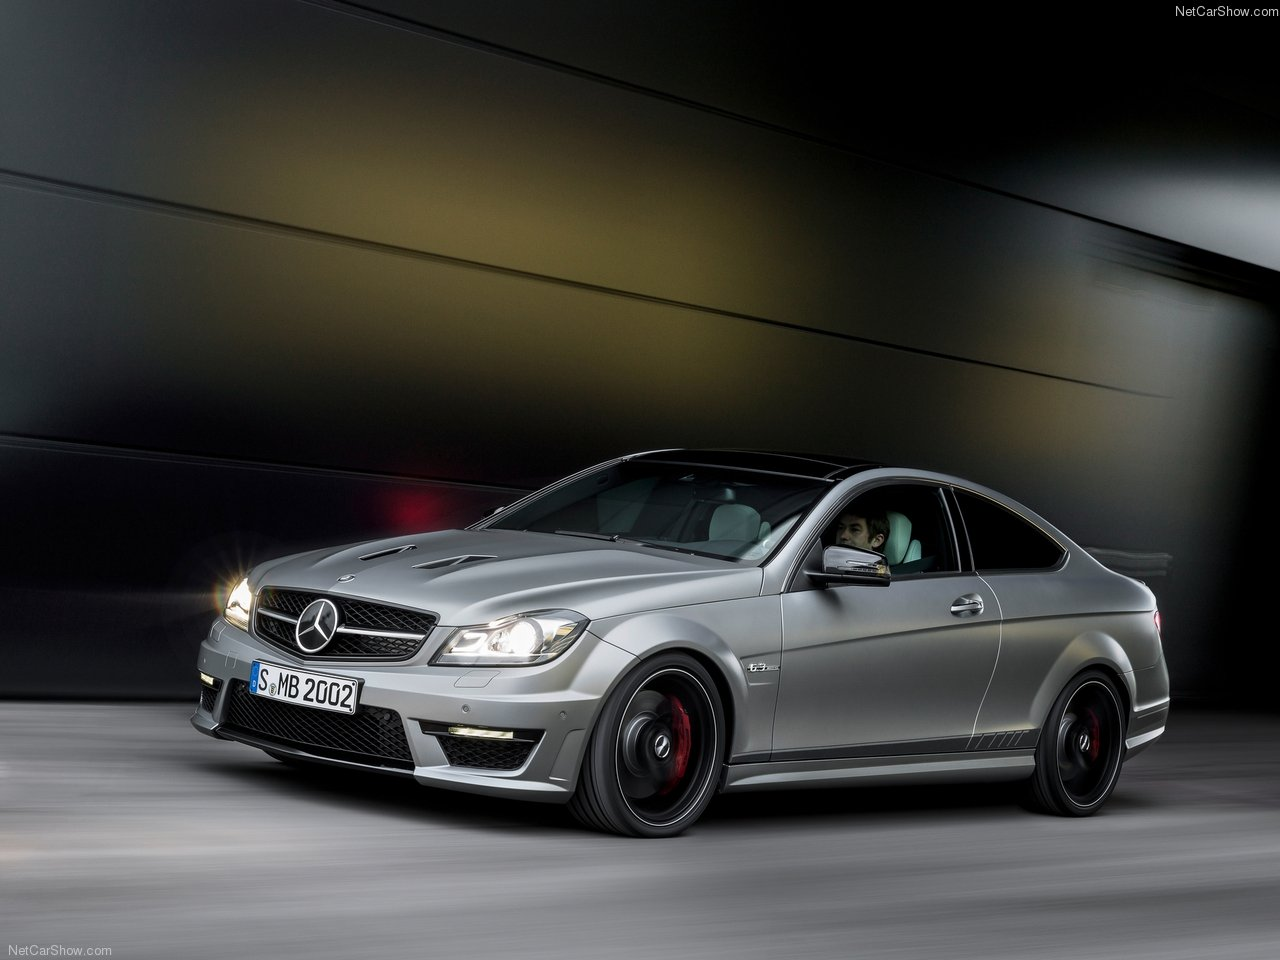 mercedes-benz-c63_amg_edition_507-2014-1280-01.jpg